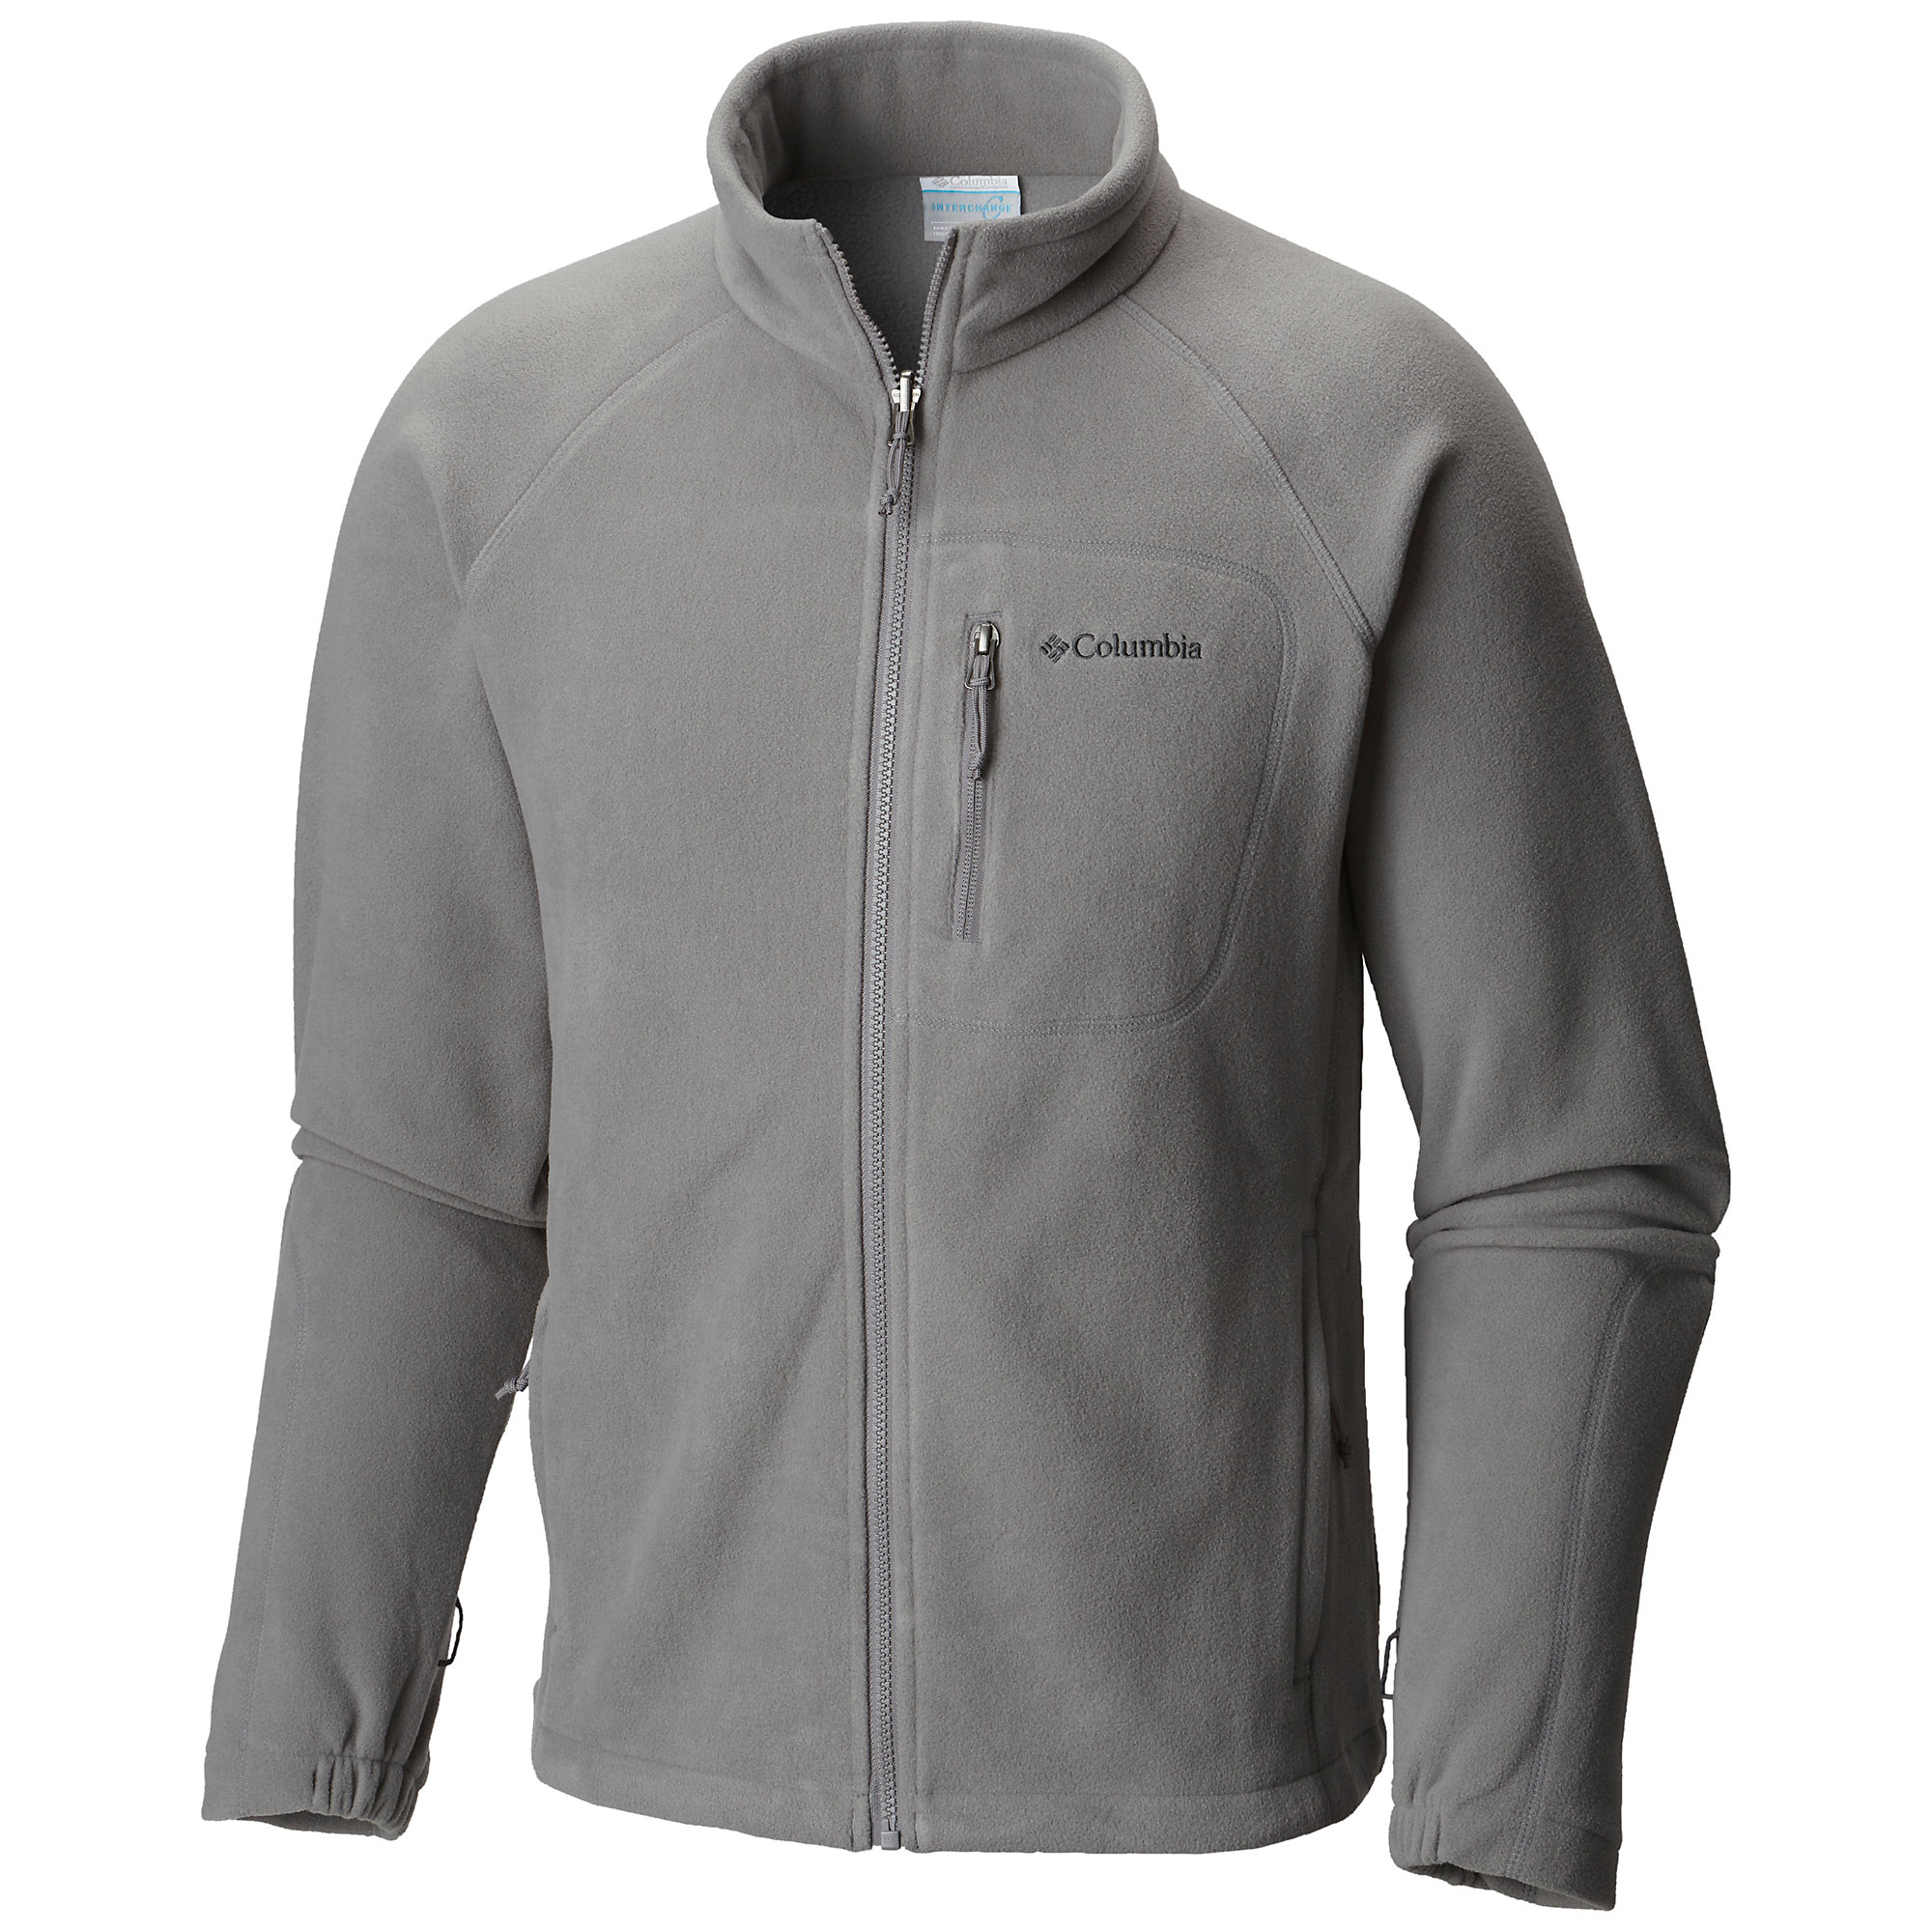 Columbia Fleece Falls II Full Zip Fleece